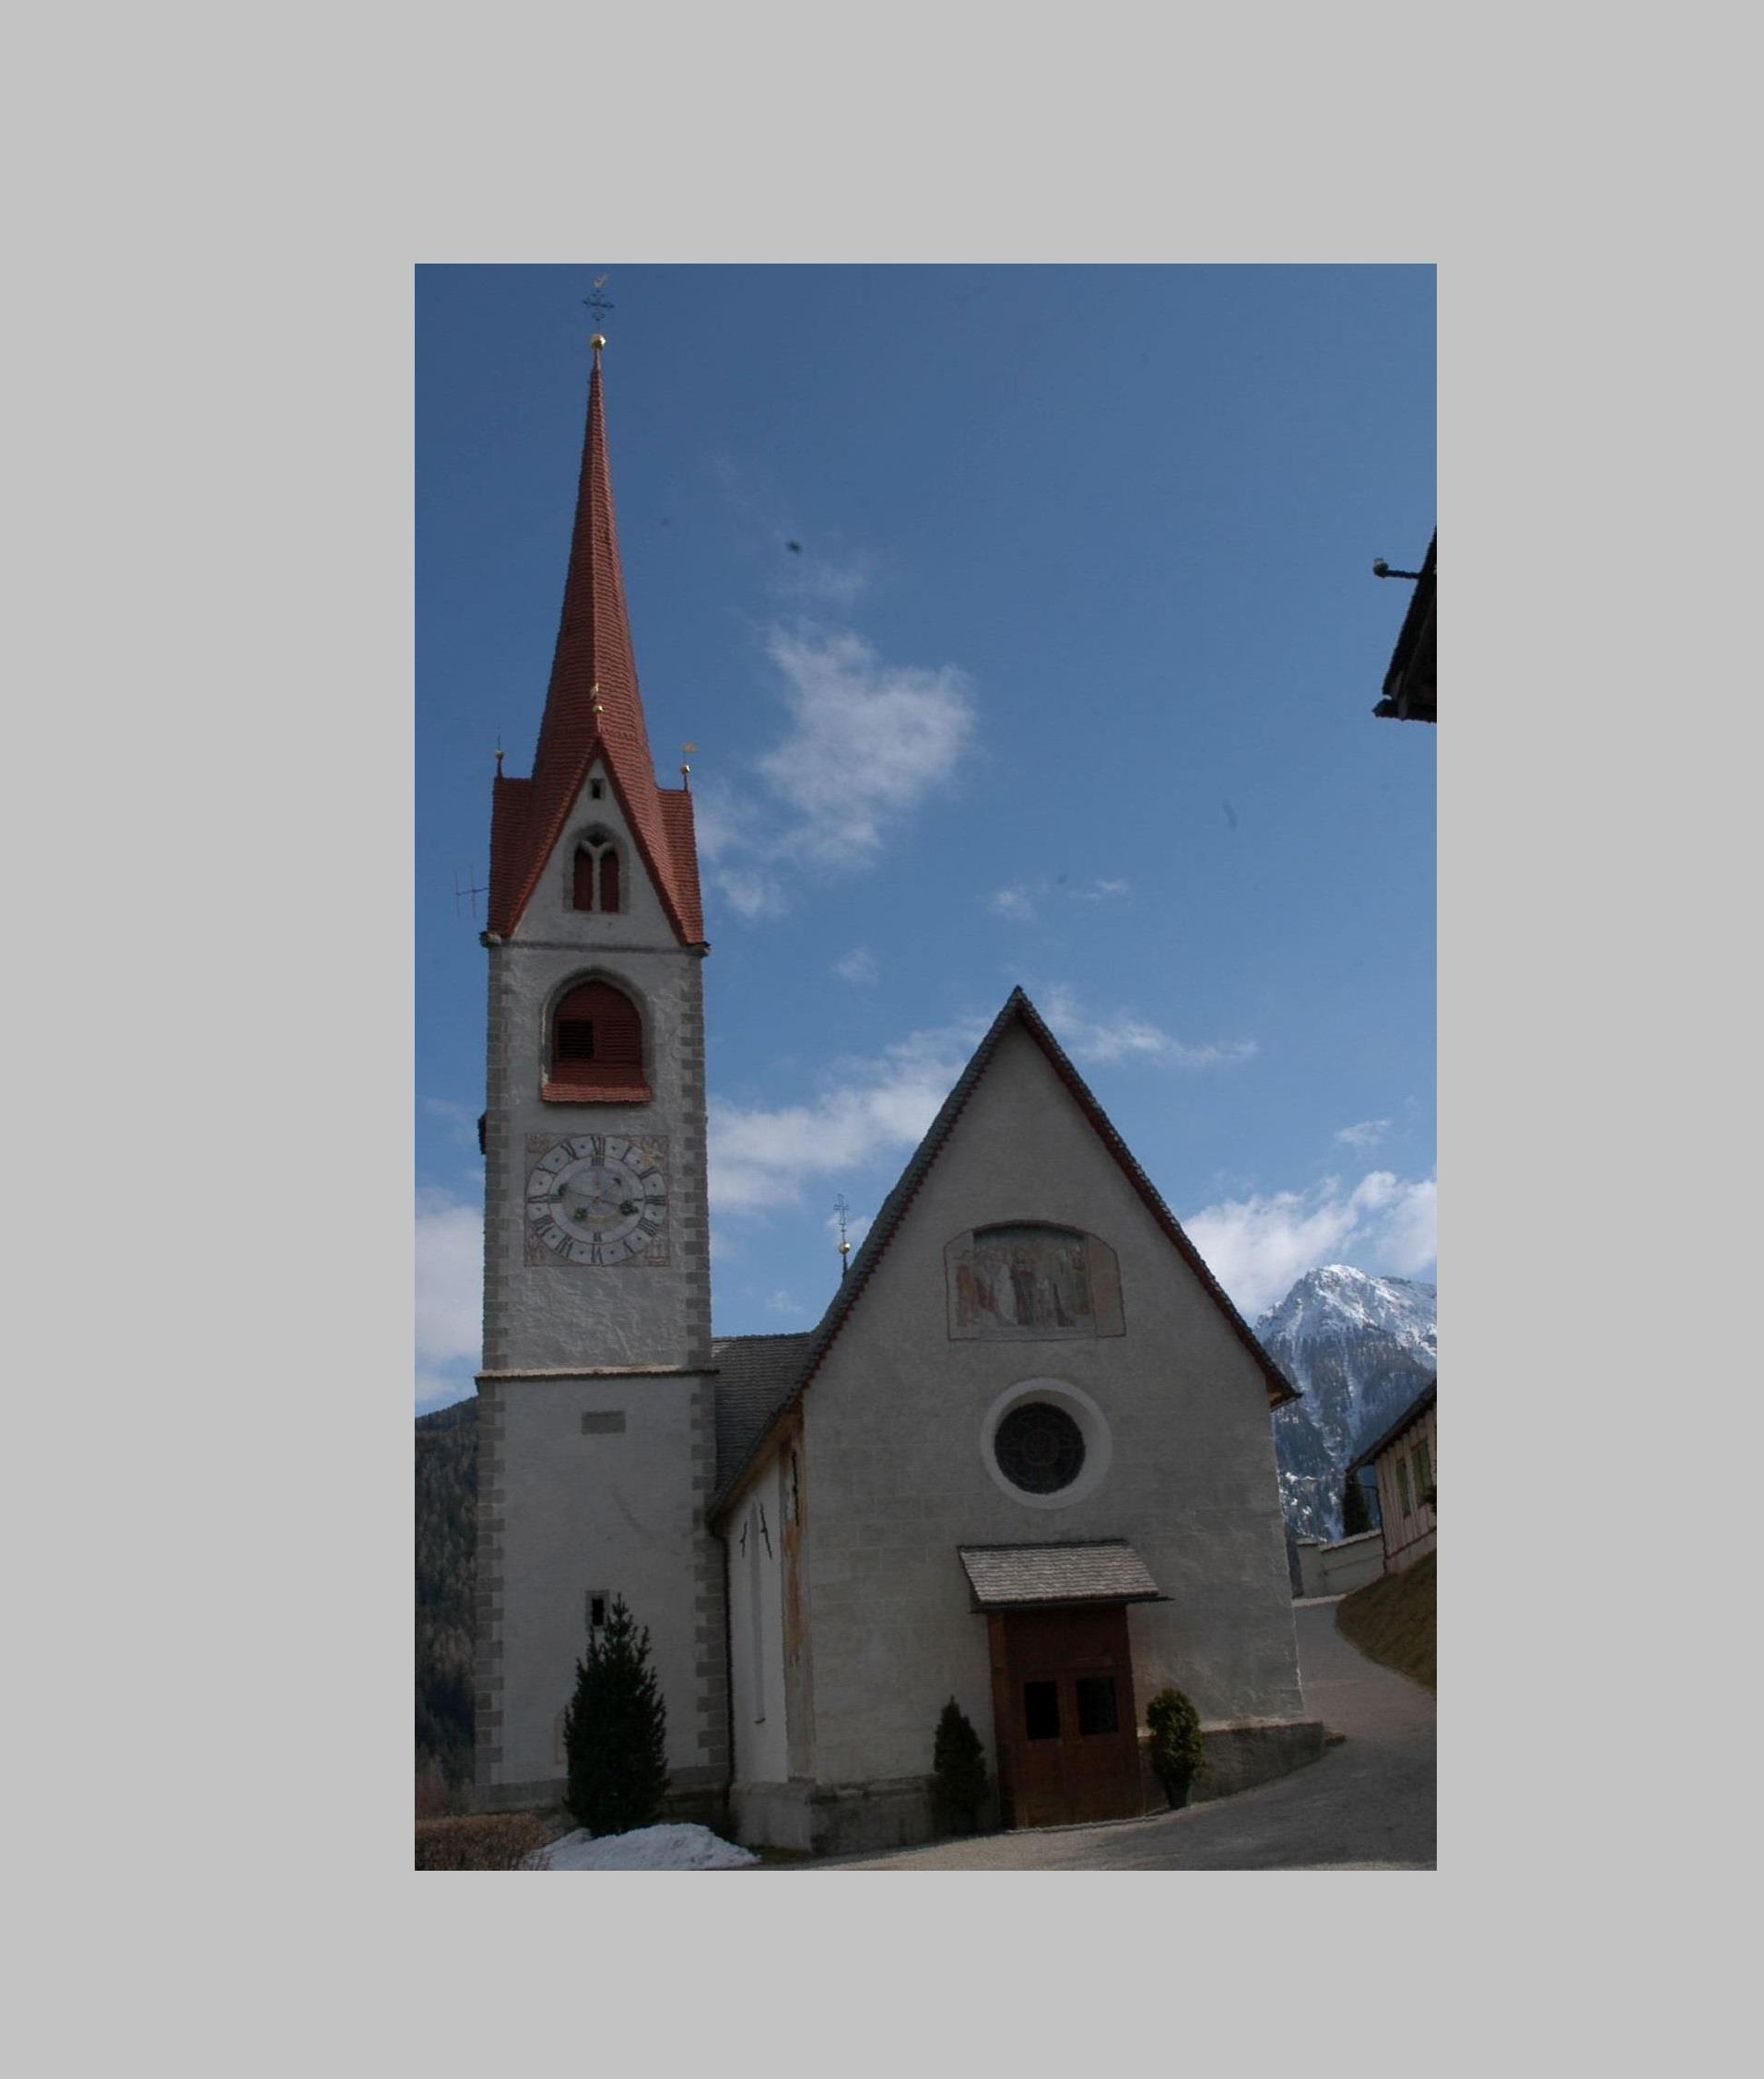 Parish Church St. Wolfgang